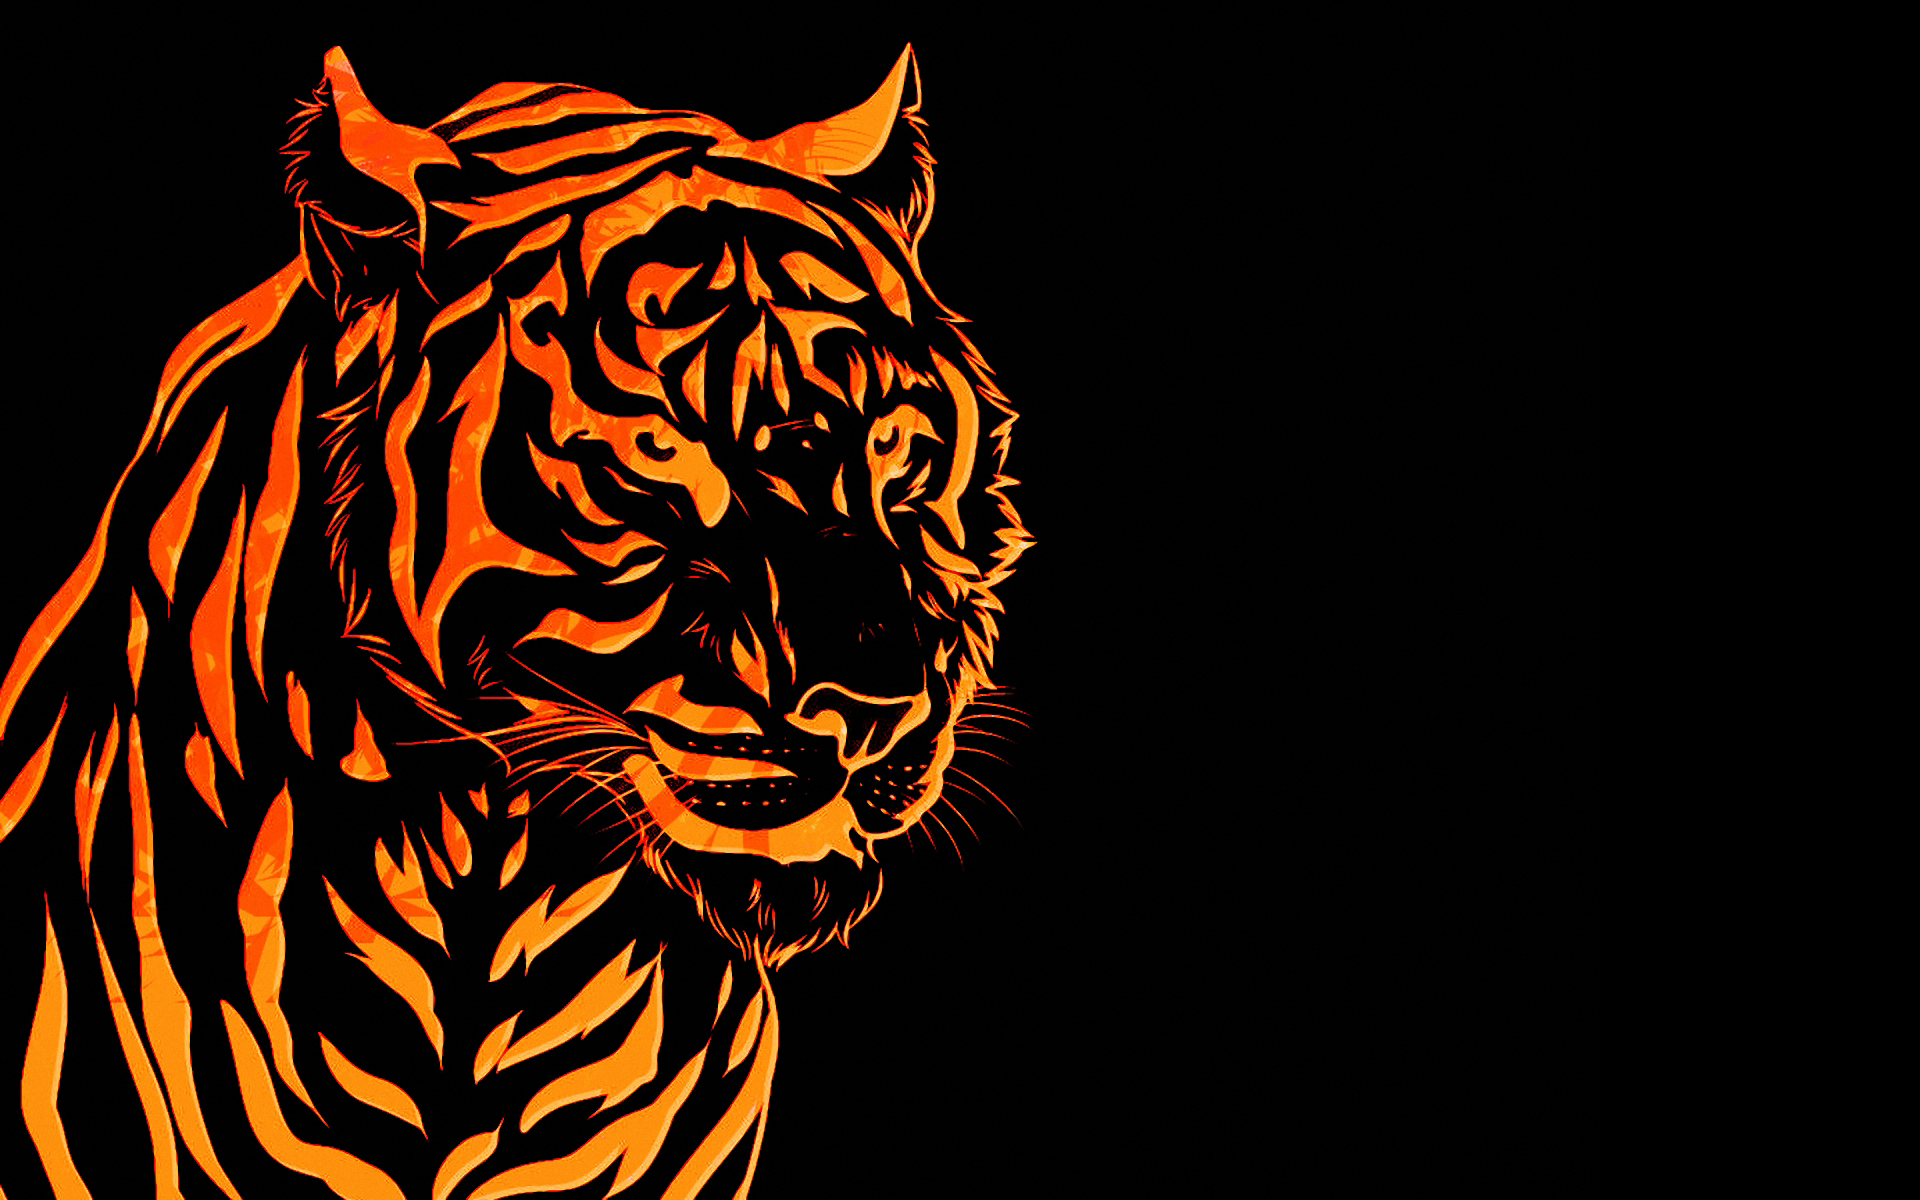 d-Animated-Tiger-d-HD-HD-wallpaper-wpc5803871